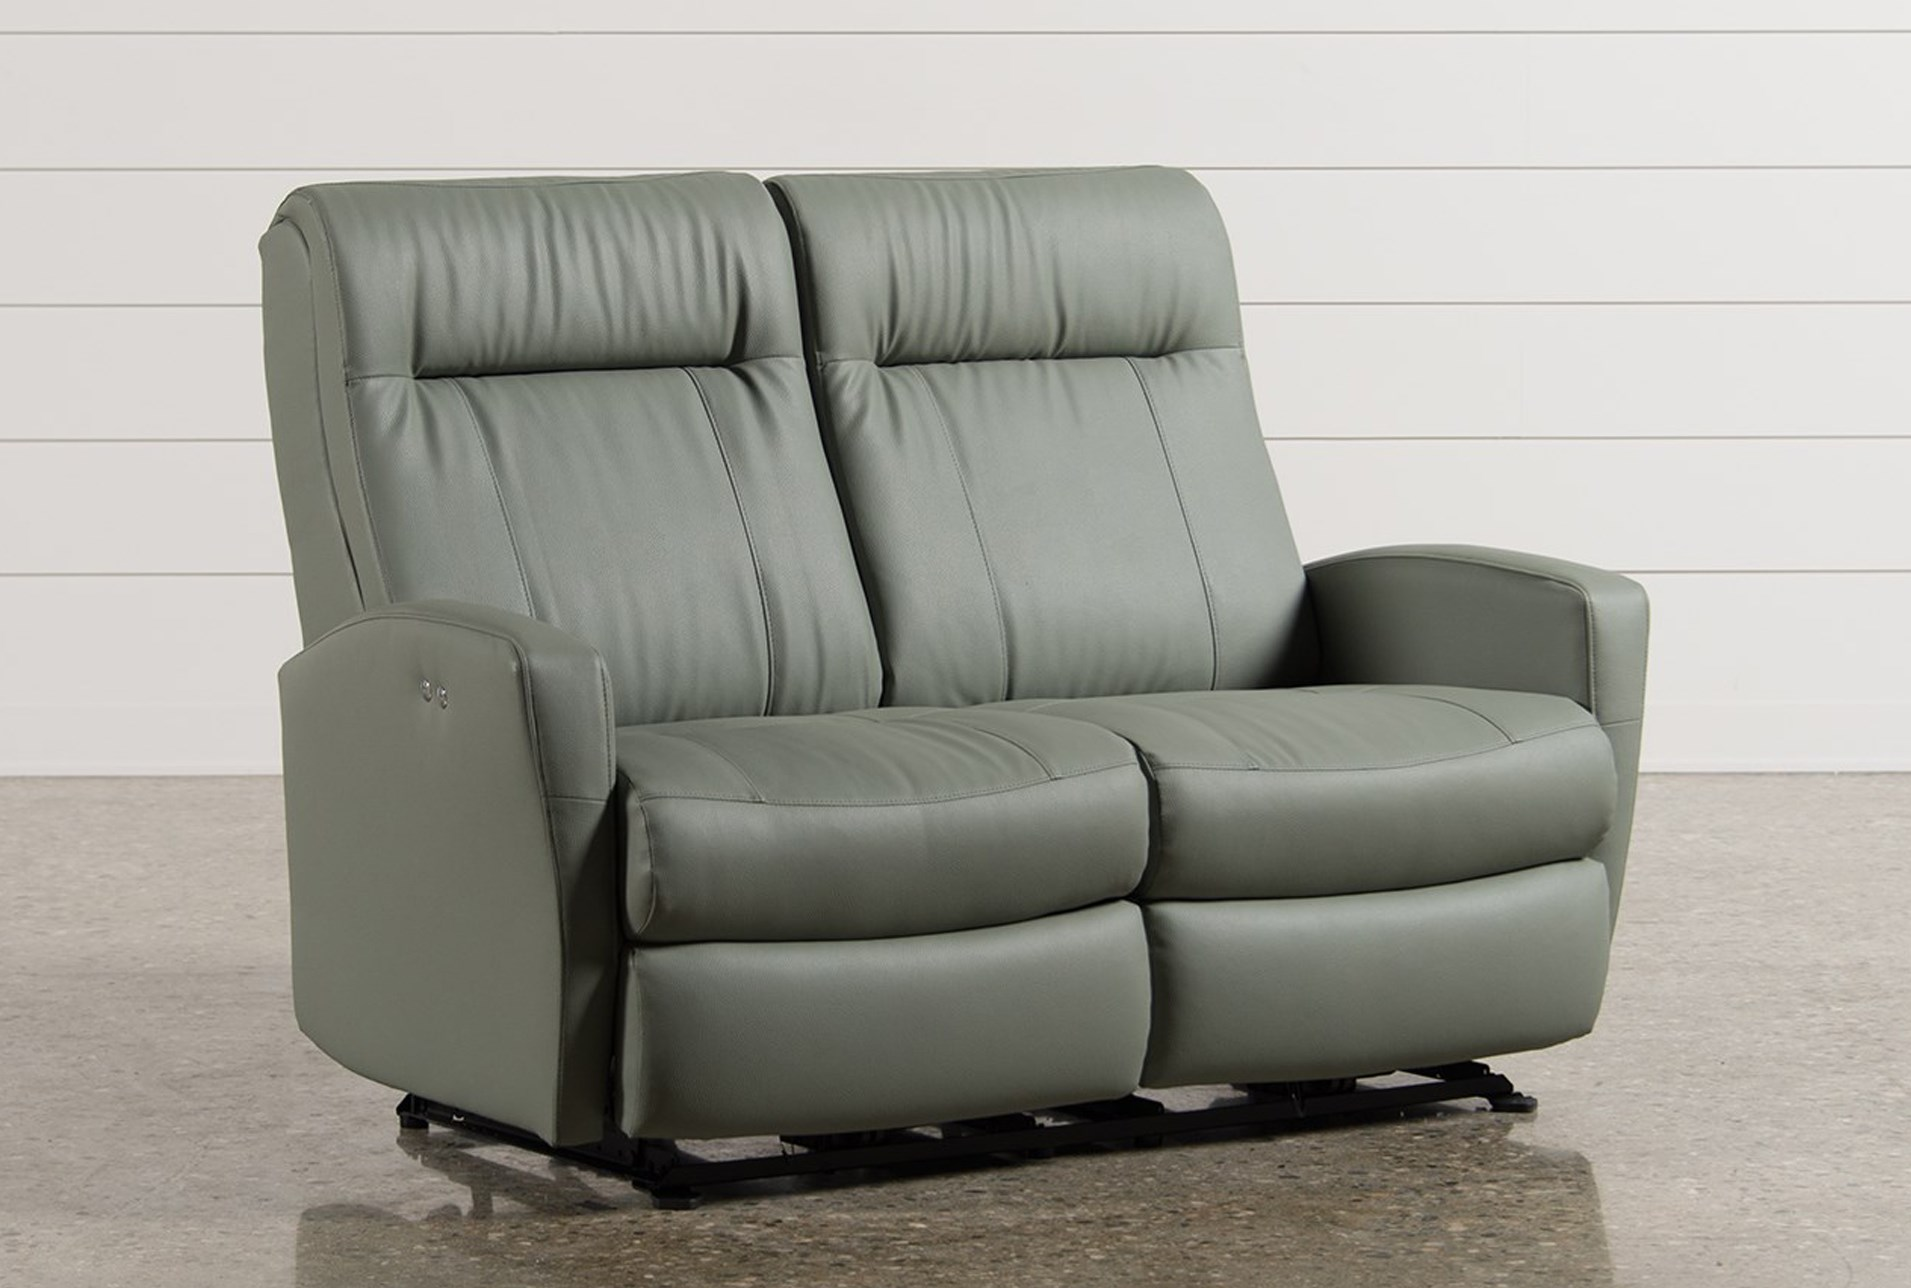 recliner dealer furniture recliners twin product long reclining oh knight store sofa ashley mentor best